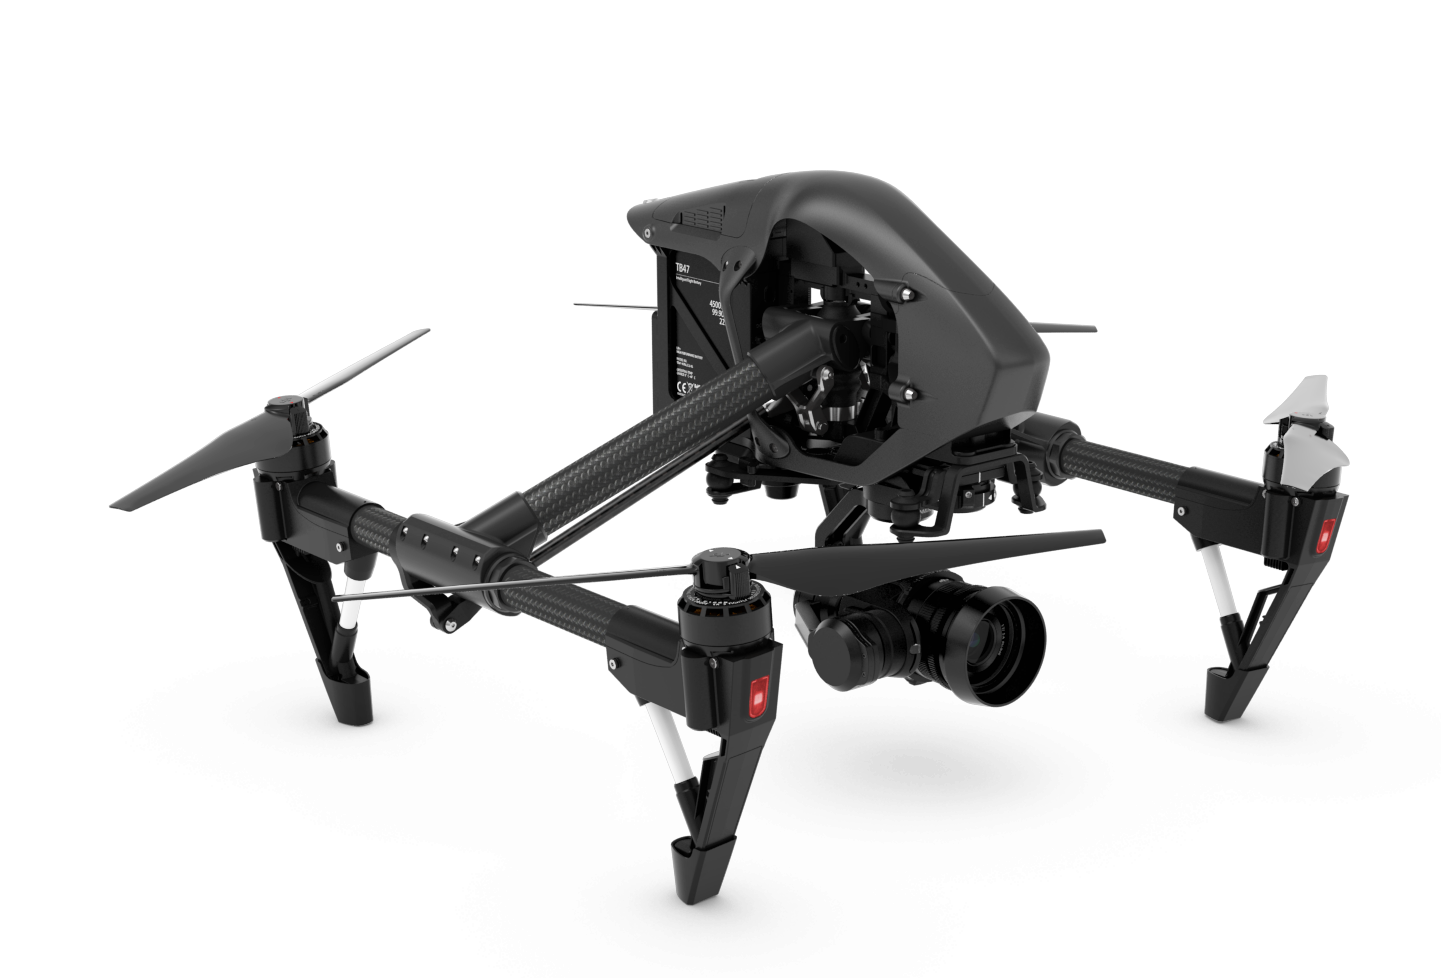 best commercial drone with Dji Introduces Phantom 3 4k And Inspire 1 Pro Black Edition 1772 on Breeding Mite Biting Bees To Control Varroa likewise Aerial Drone Photography moreover The Prosumer Drone Will Never Die likewise Figuring Aerial Surveying Drone Instead Arguing Photogrammetry Vs Lidar as well Big.